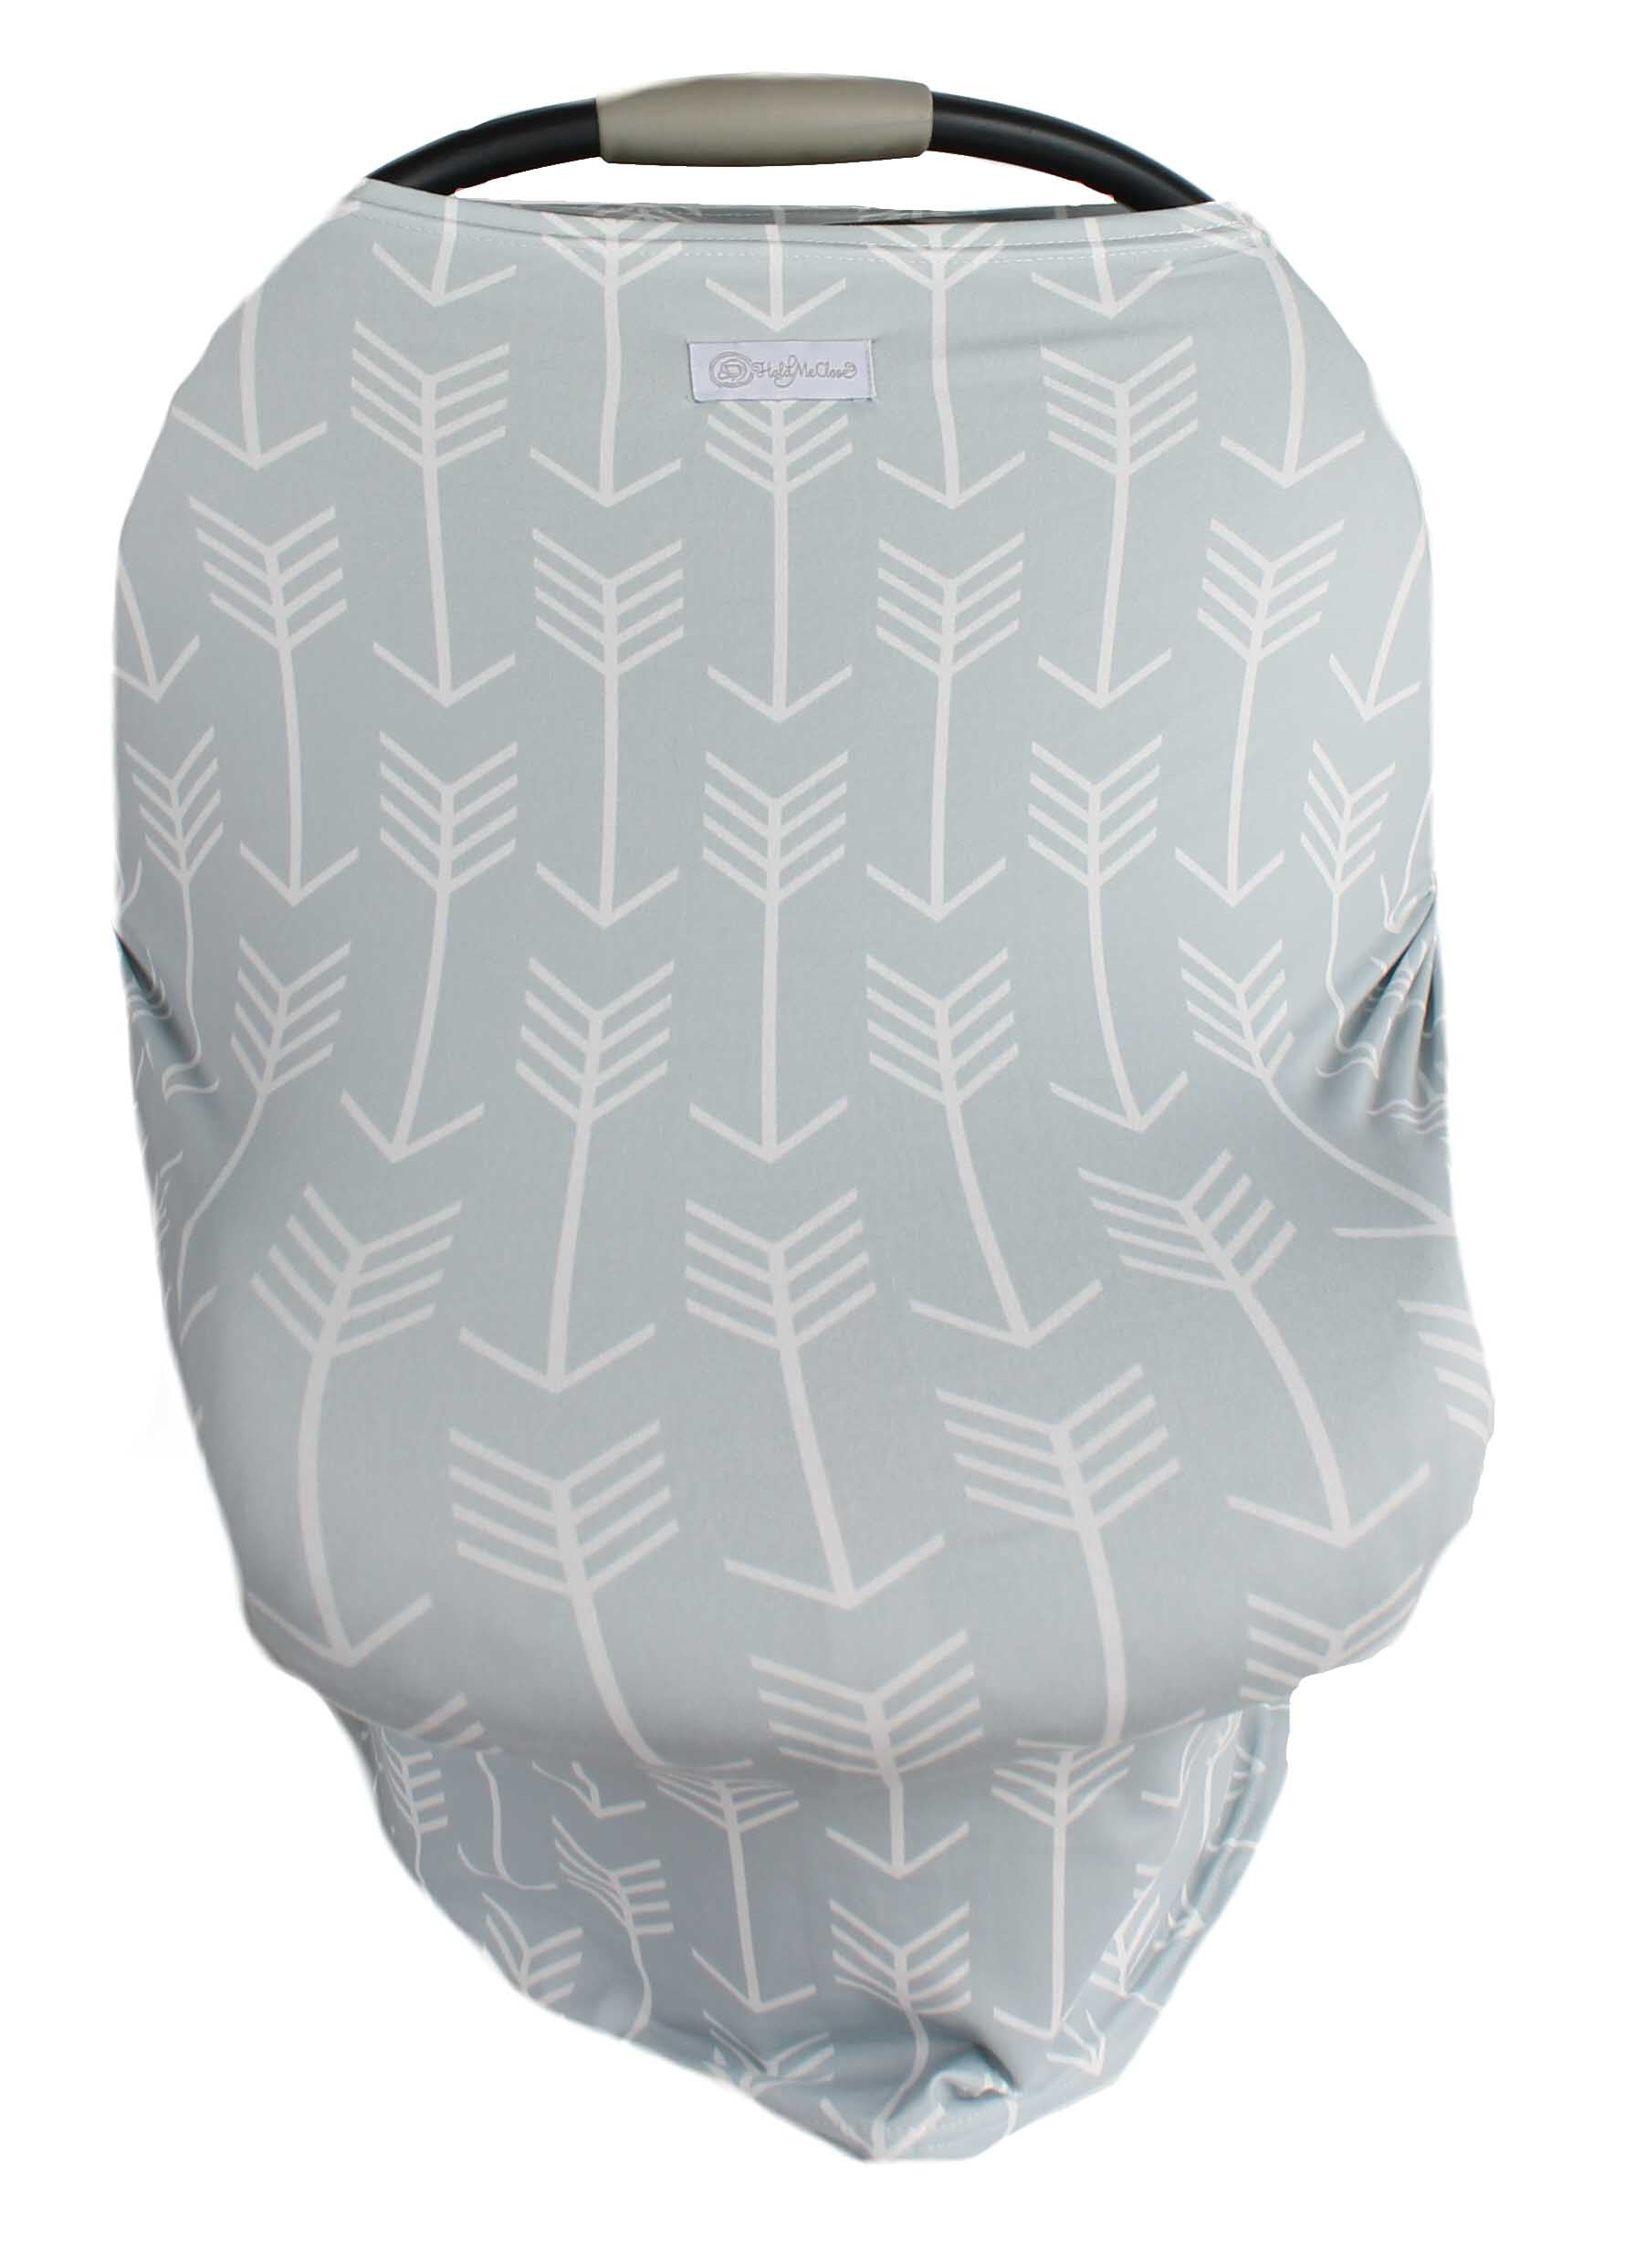 Gray with white arrows Multi-Use Stretchy Car Seat Cover and Nursing Poncho All In One, New Baby Gift